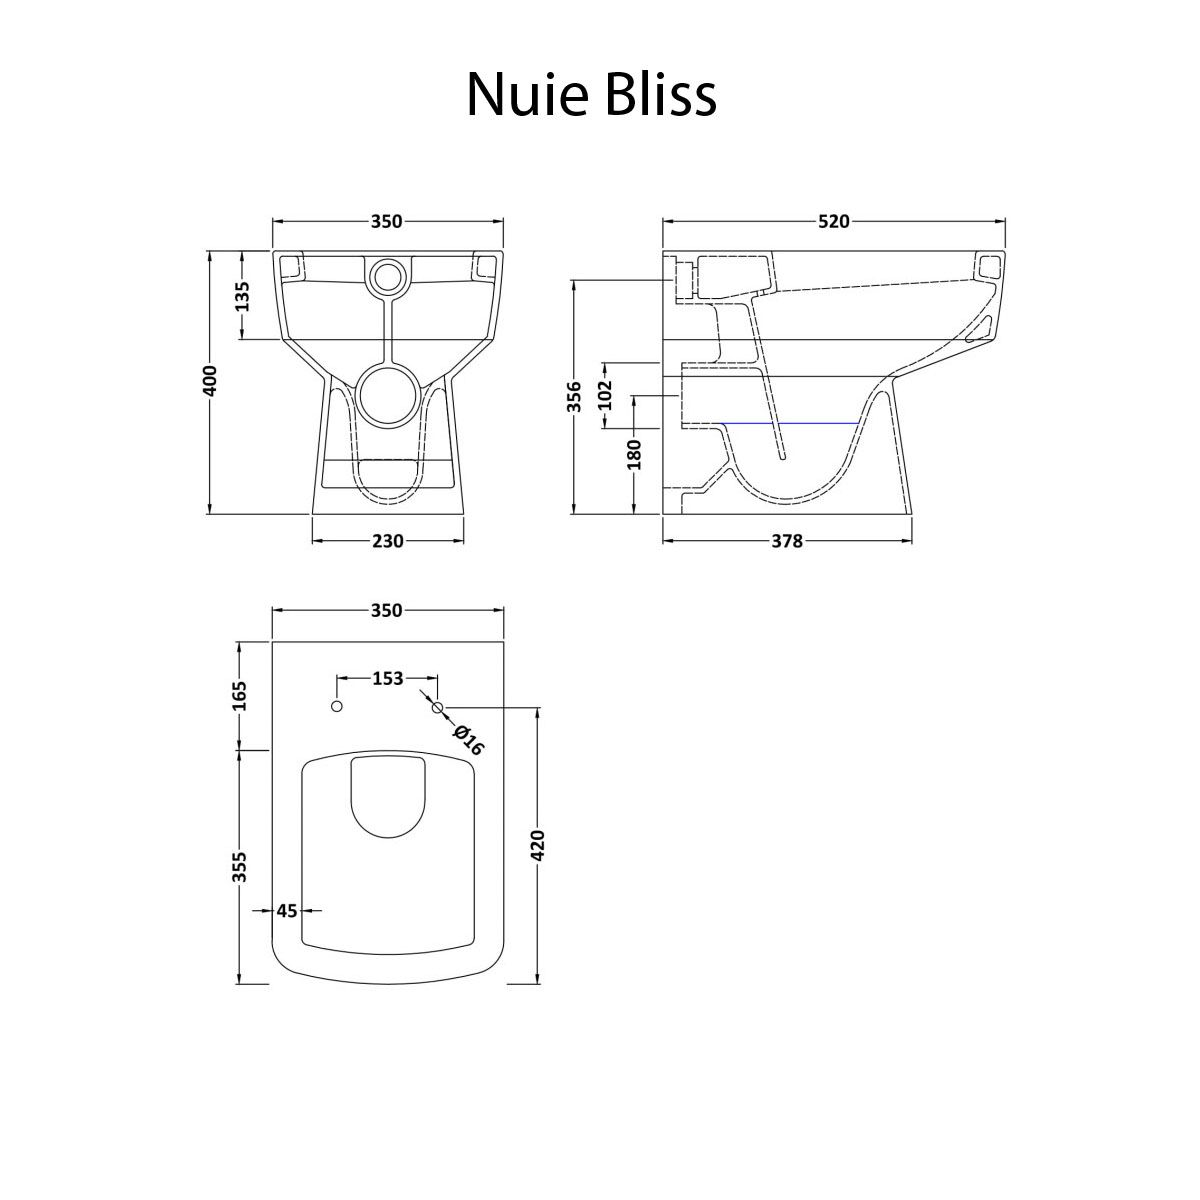 Nuie Bliss back to wall toilet dimension